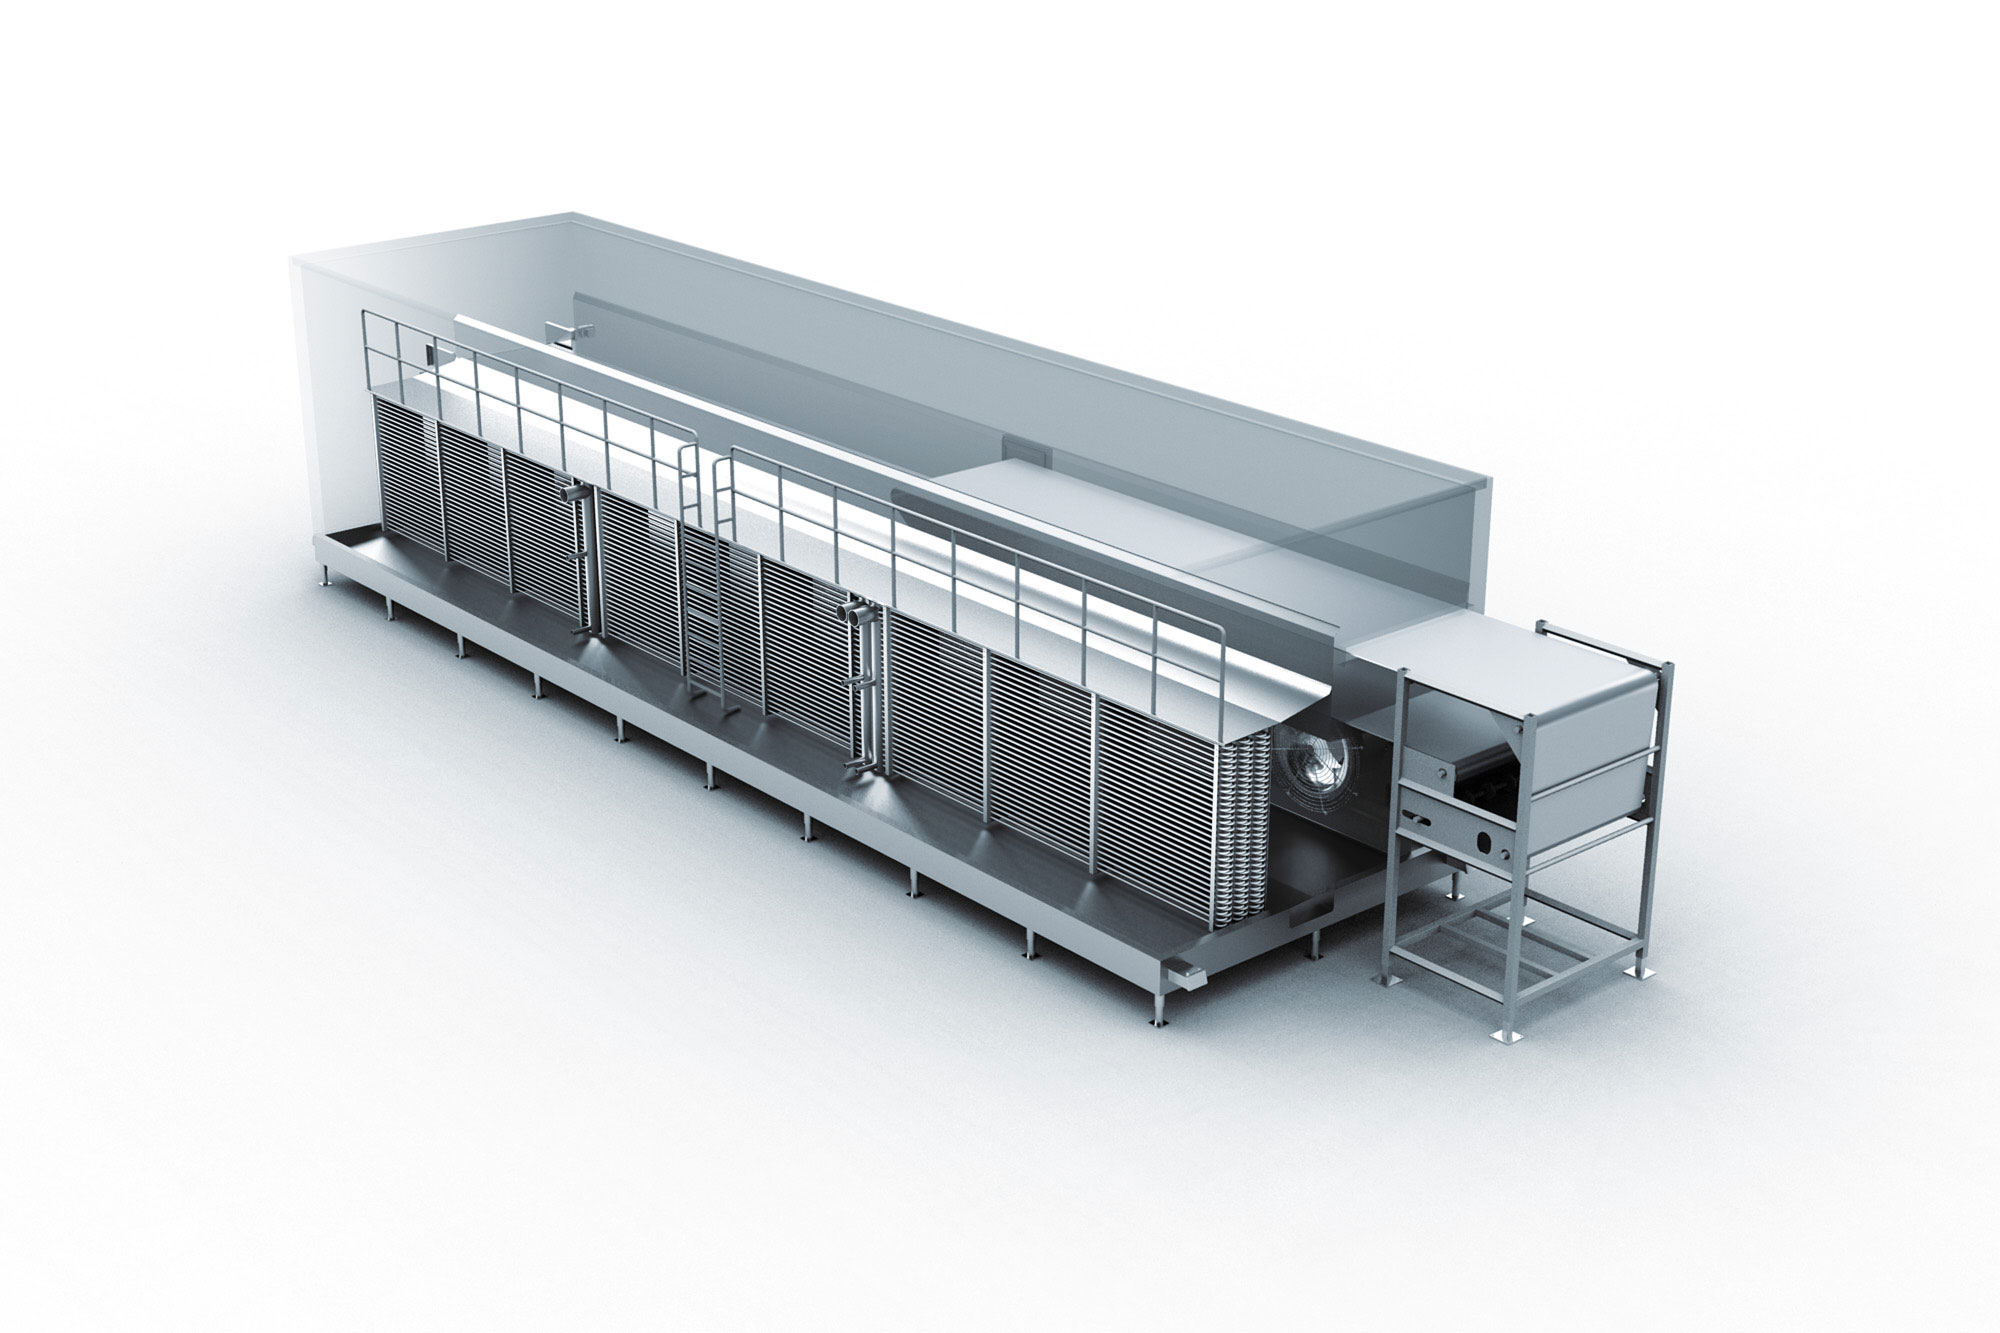 fps iqf freezer external view 3